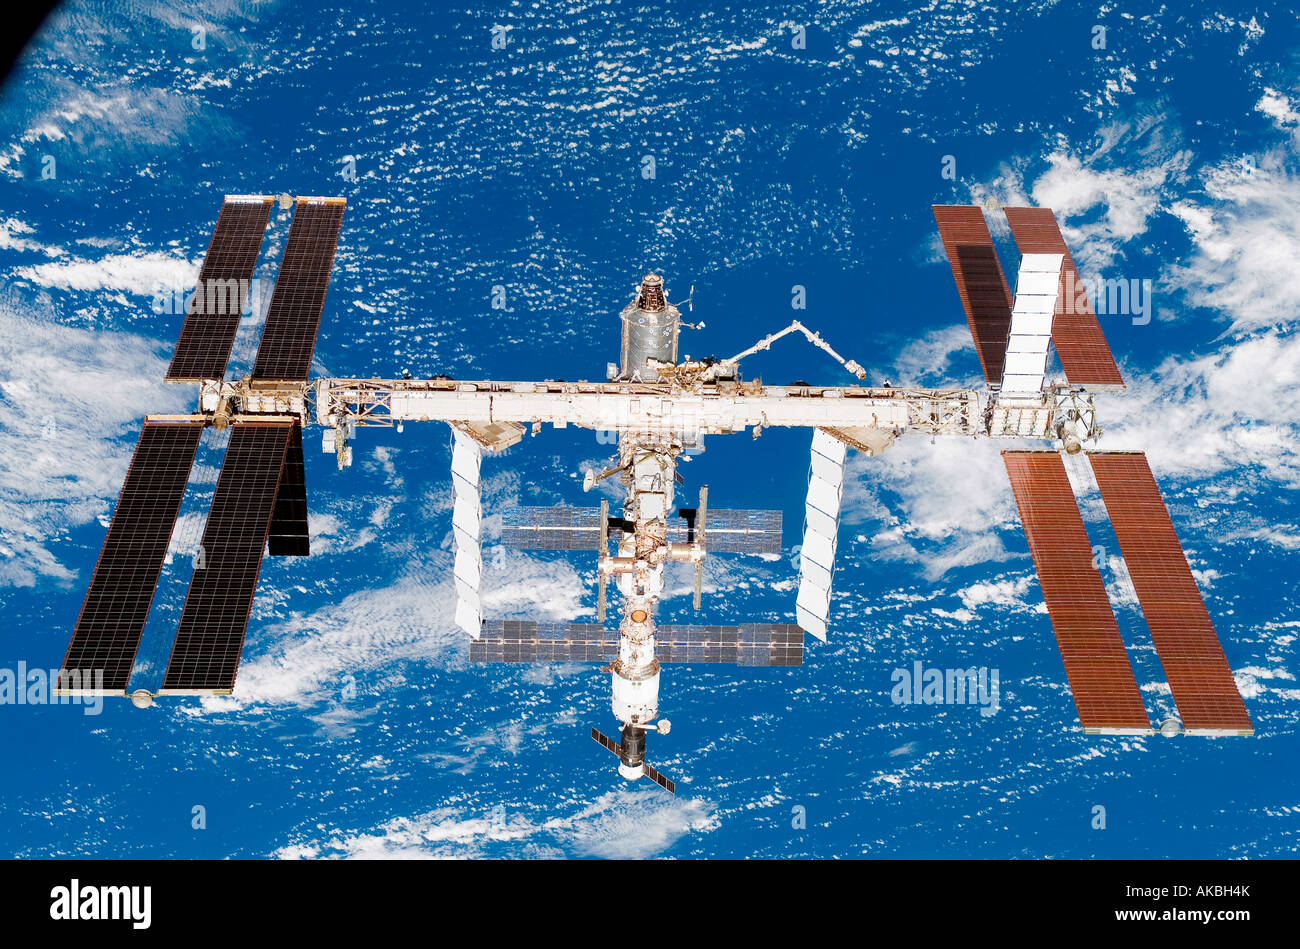 The International Space Station - Stock Image